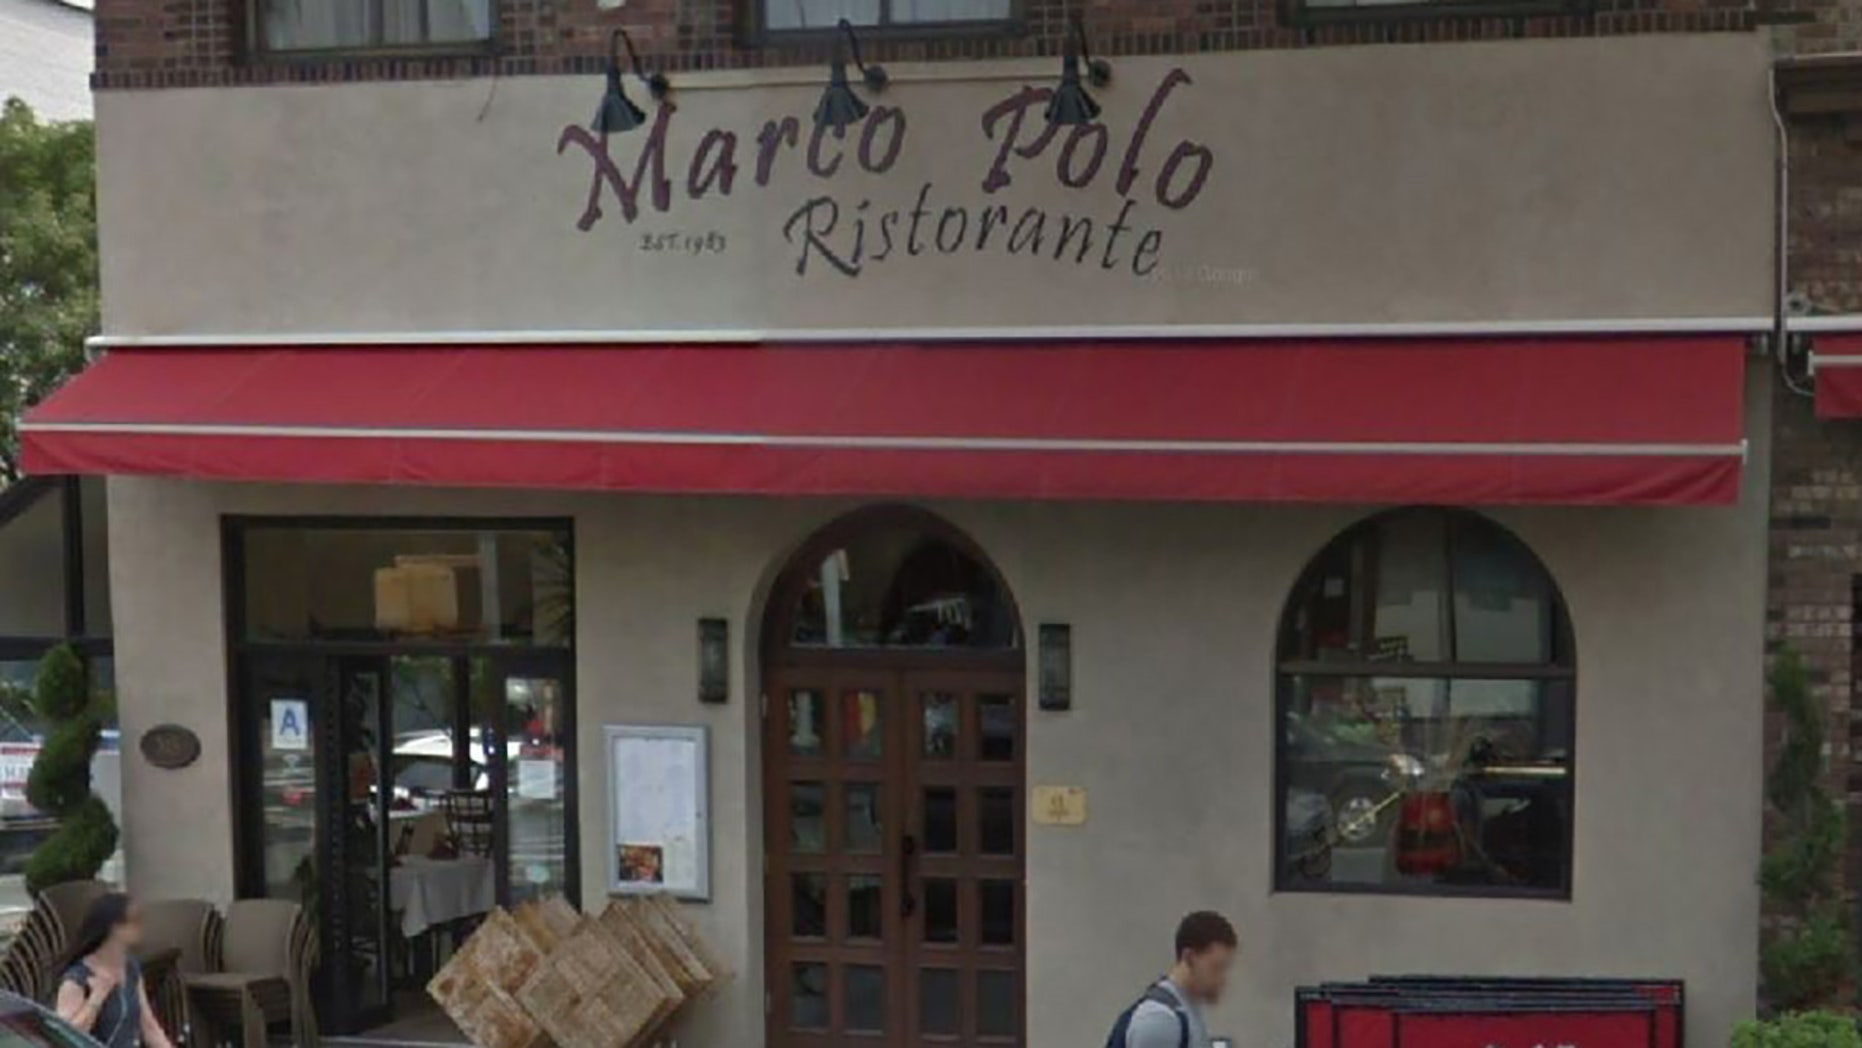 An employee arriving for work at Brooklyn's Marco Polo Ristorante just before 8 a.m. said he found the front window and door riddled with bullet holes, The New York Post reported.